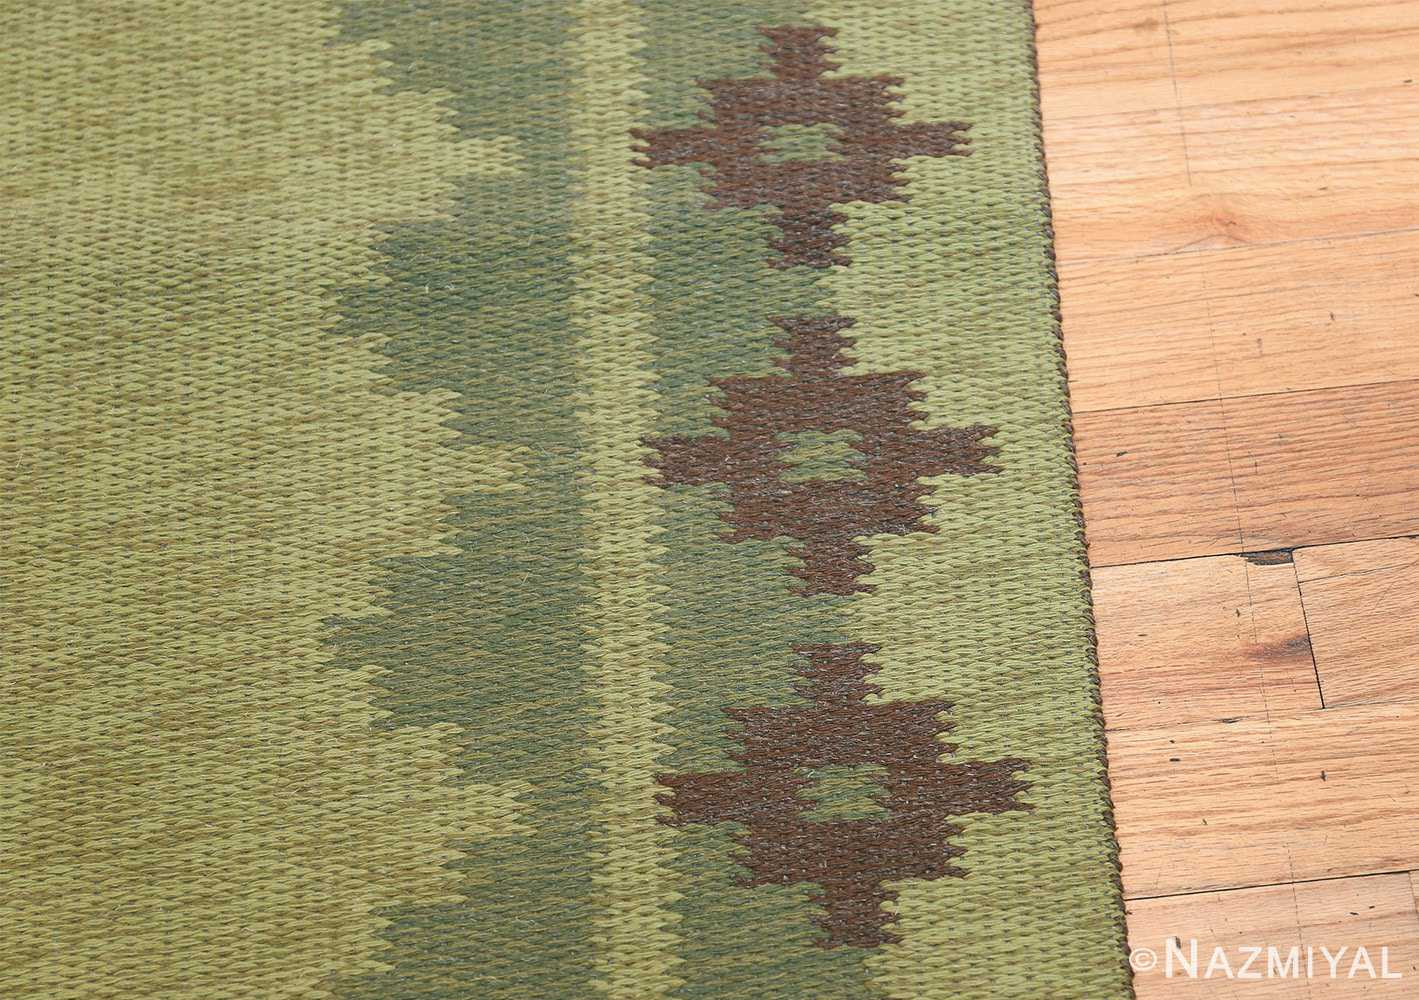 Vintage Scandinavian Swedish Rug 47005 Light Green Border Nazmiyal